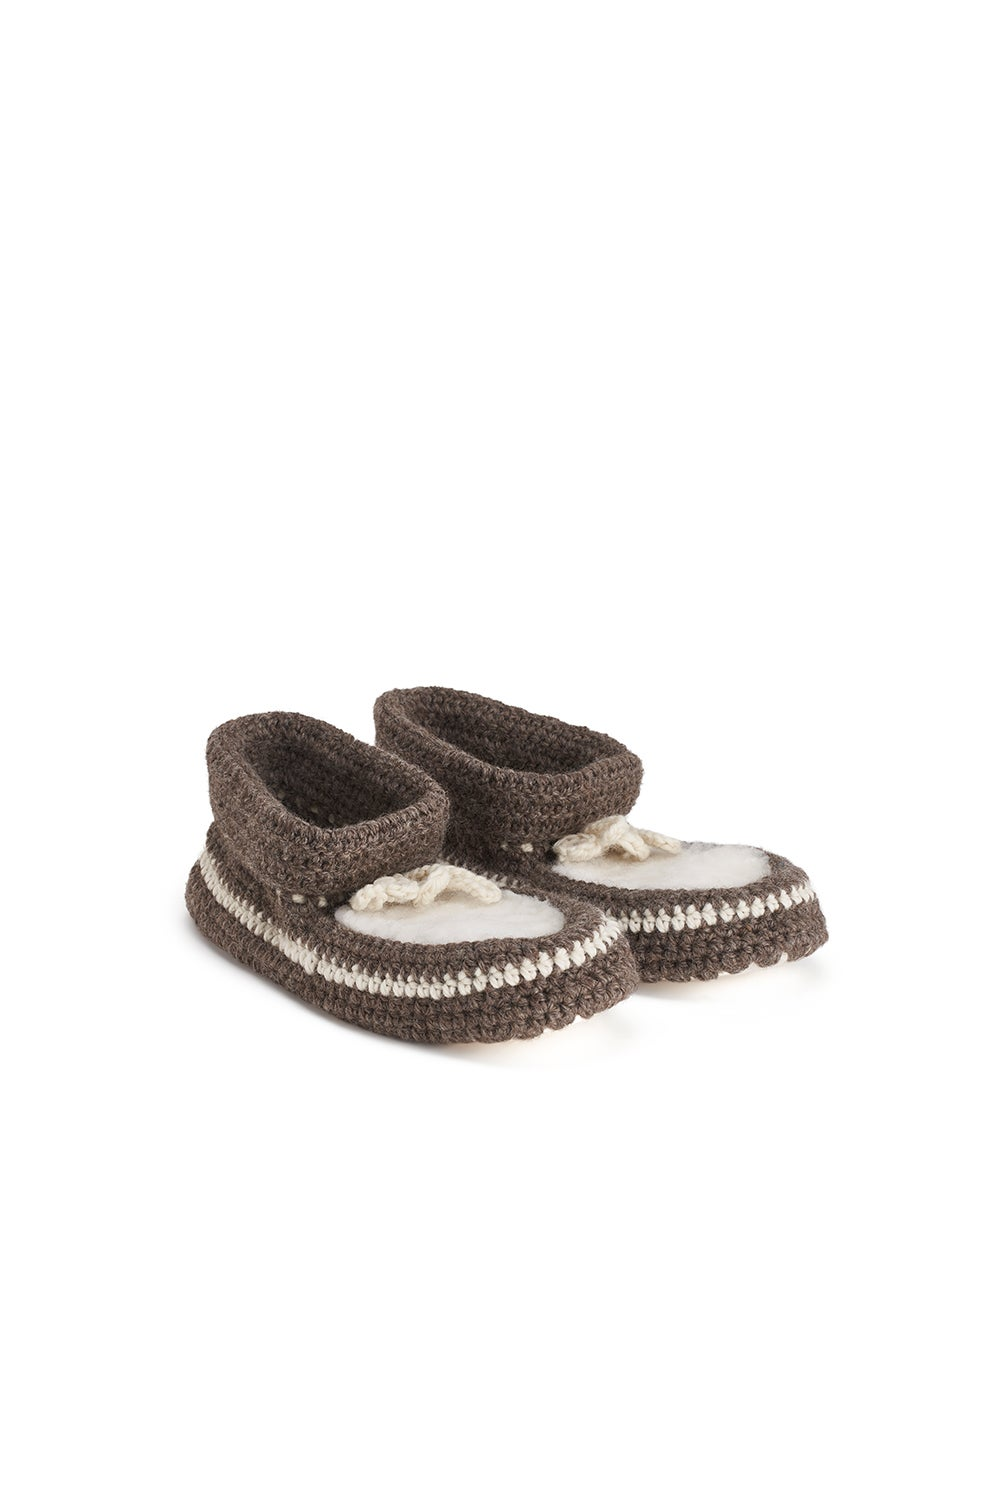 Classic New Zealand x Karen Walker Crochet Slipper